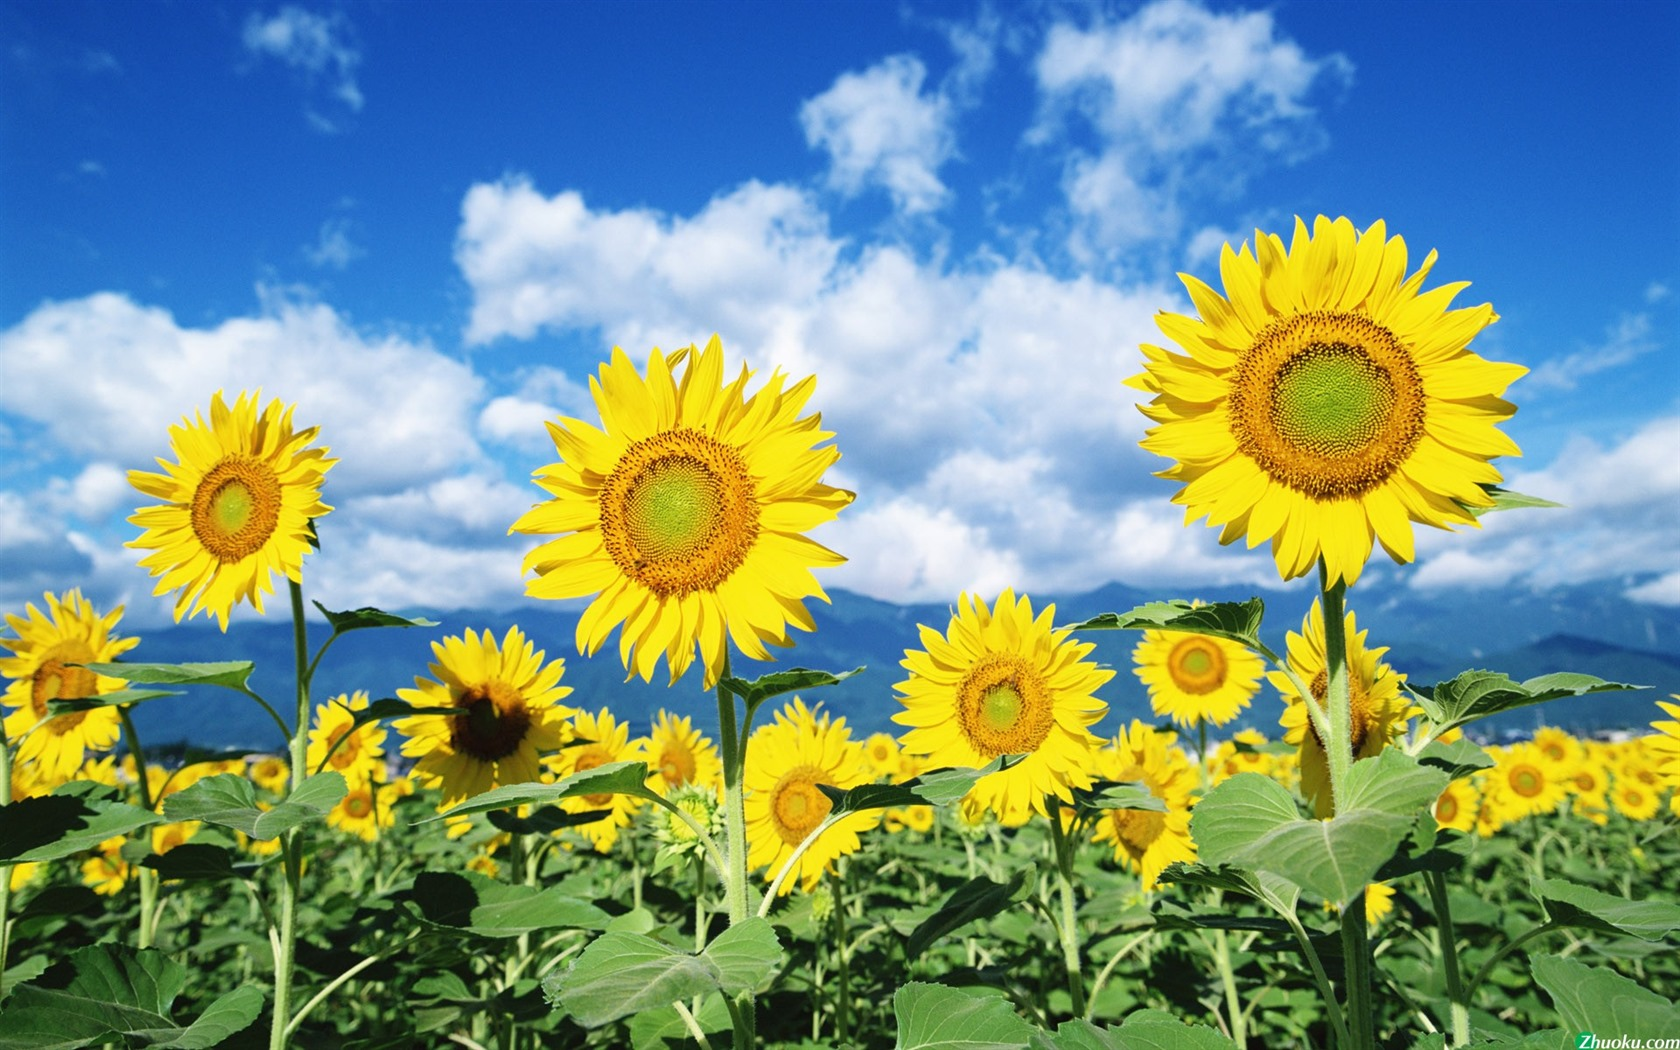 Blue sky and white clouds flowers sunflowers yellow green leaves 1680x1050